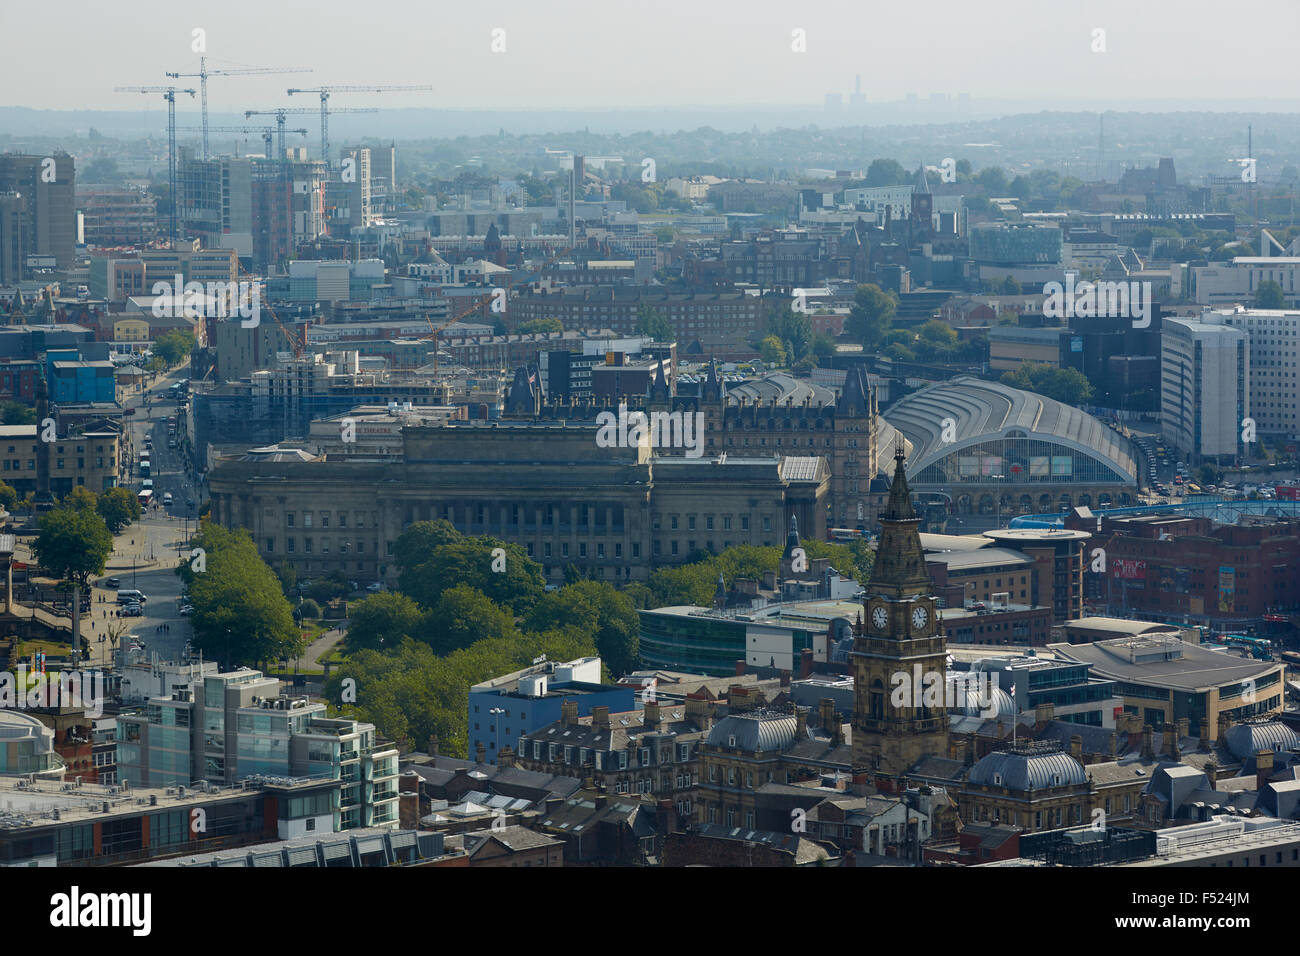 Liverpool Lime Street railway terminus station exterior  area of liverpool   Skyline high viewpoint landmark attraction - Stock Image